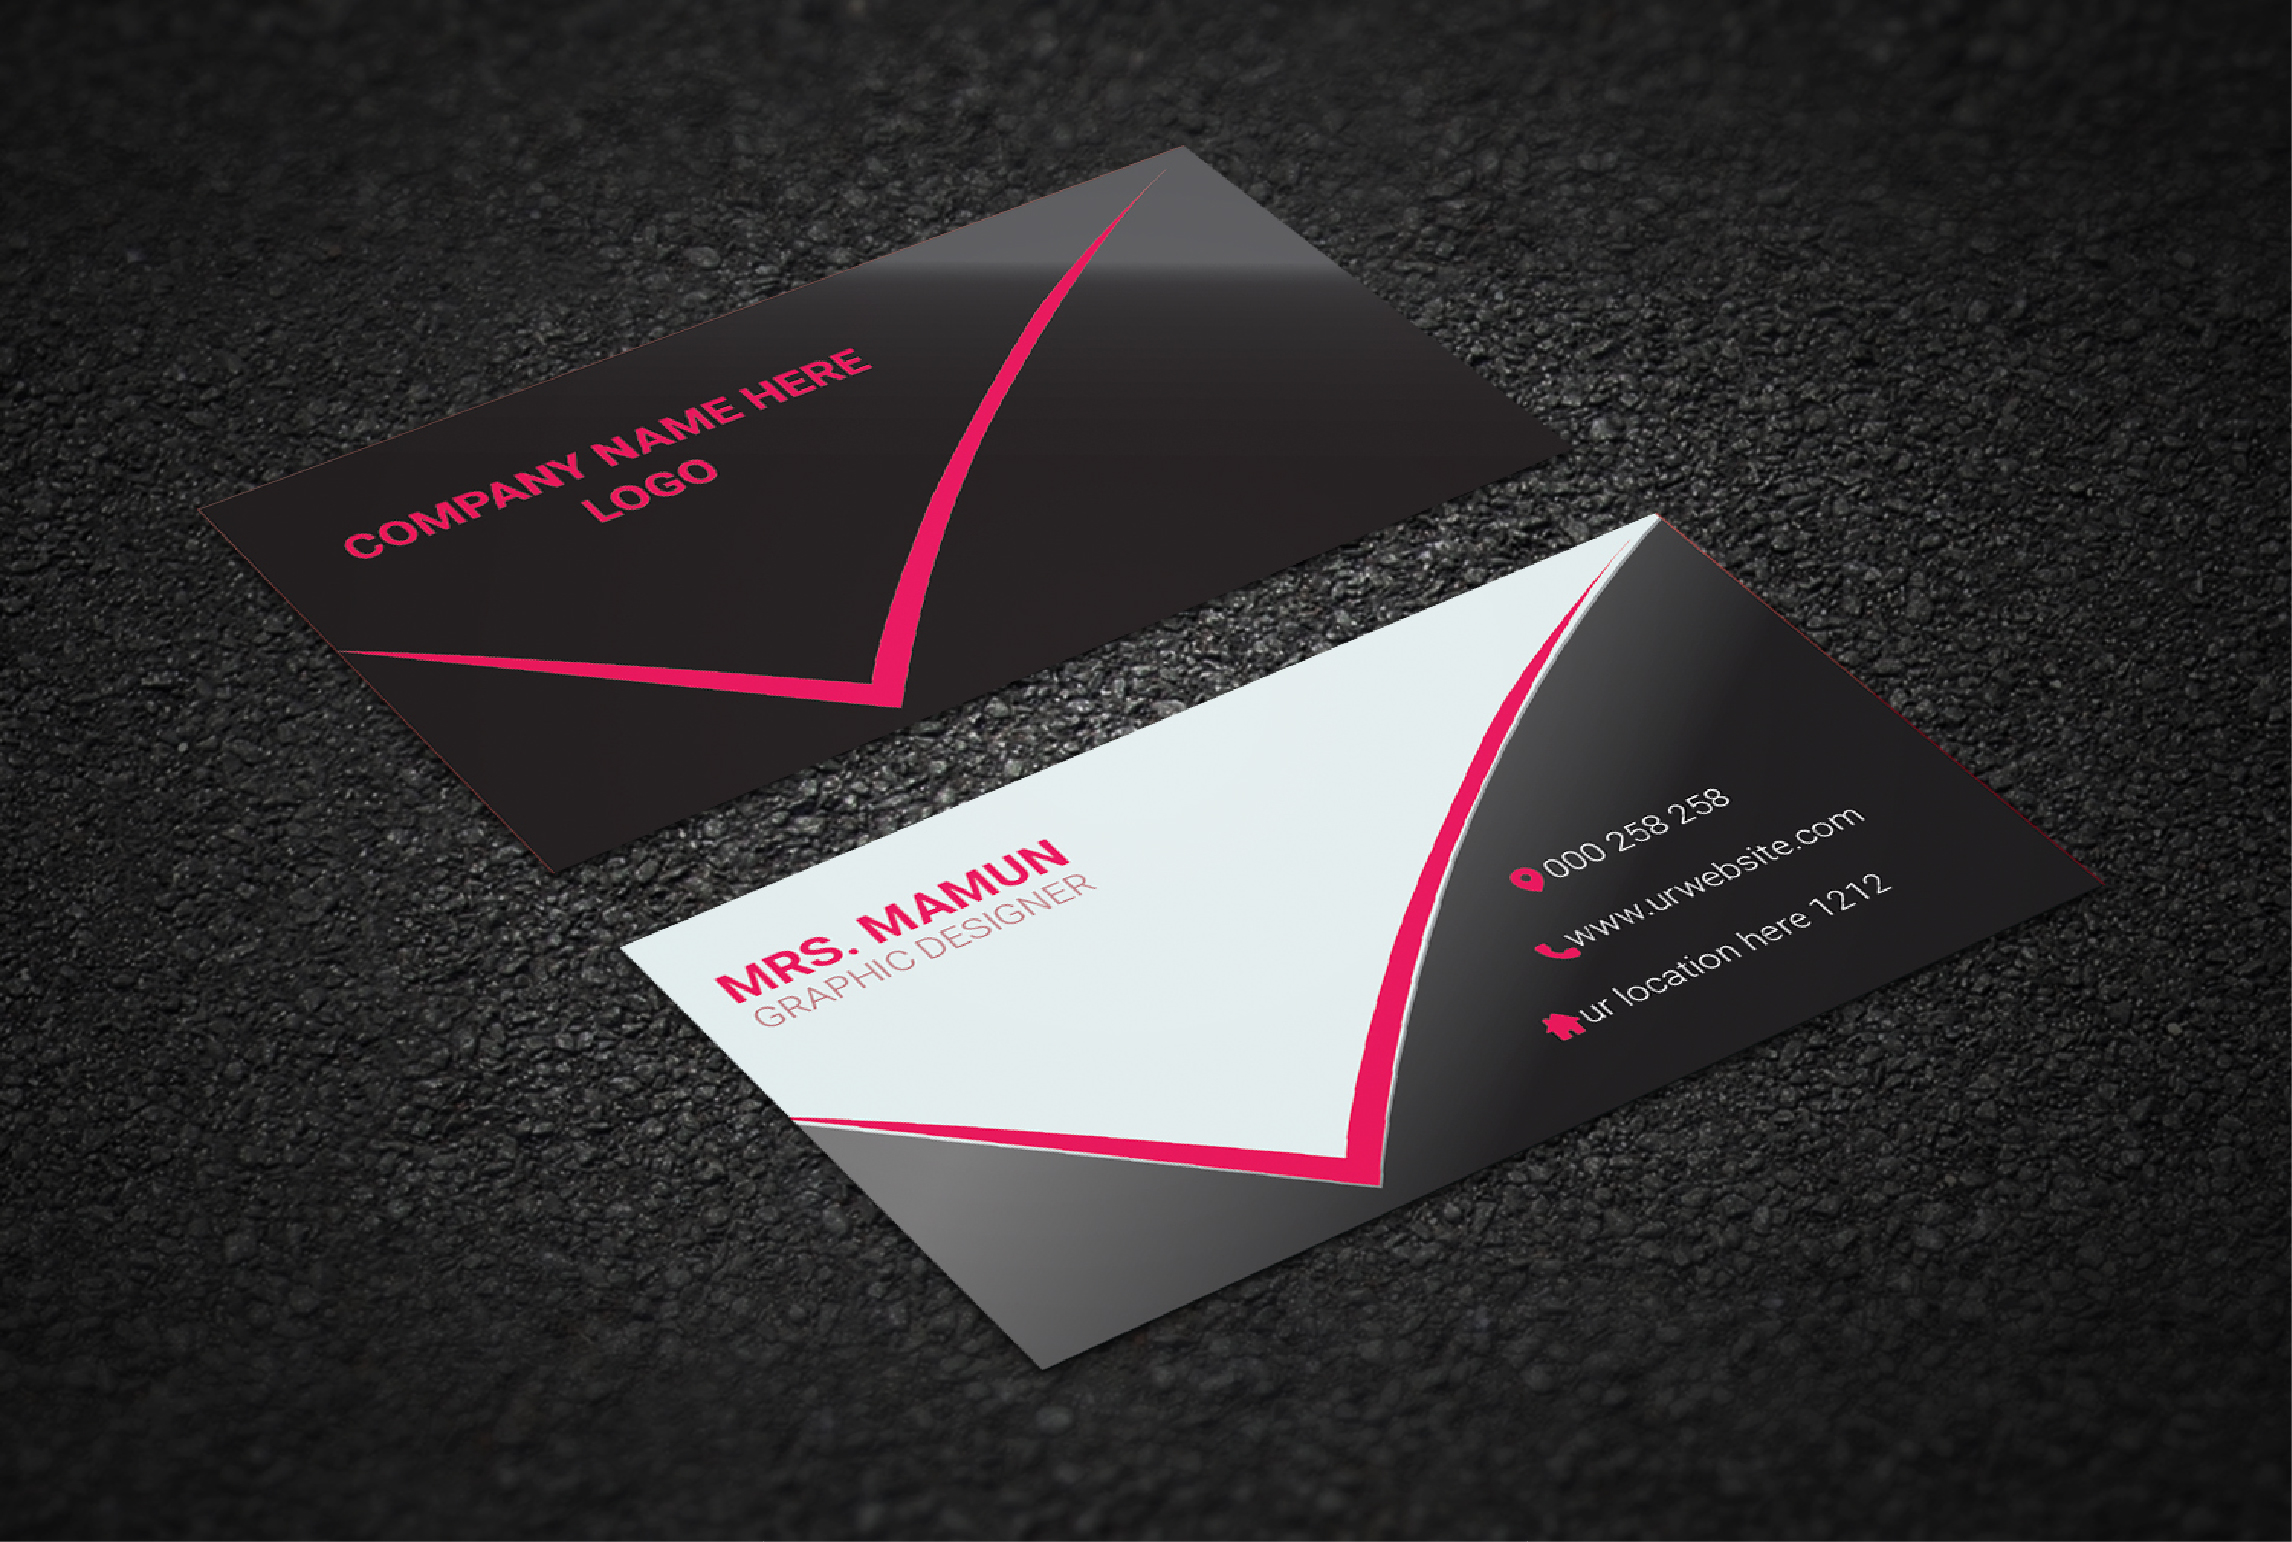 I will create creative business card design